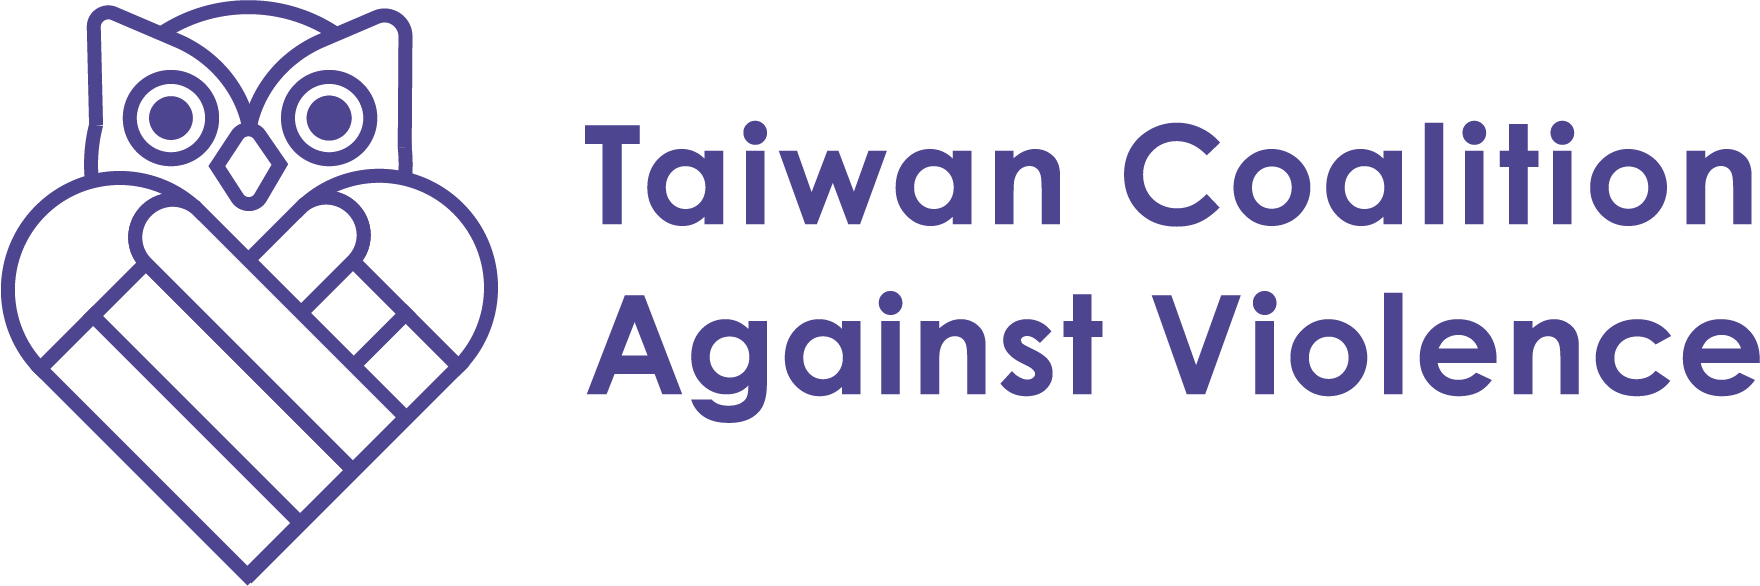 Taiwan Coalition Against Violence –This Month's Spotlighted Charity